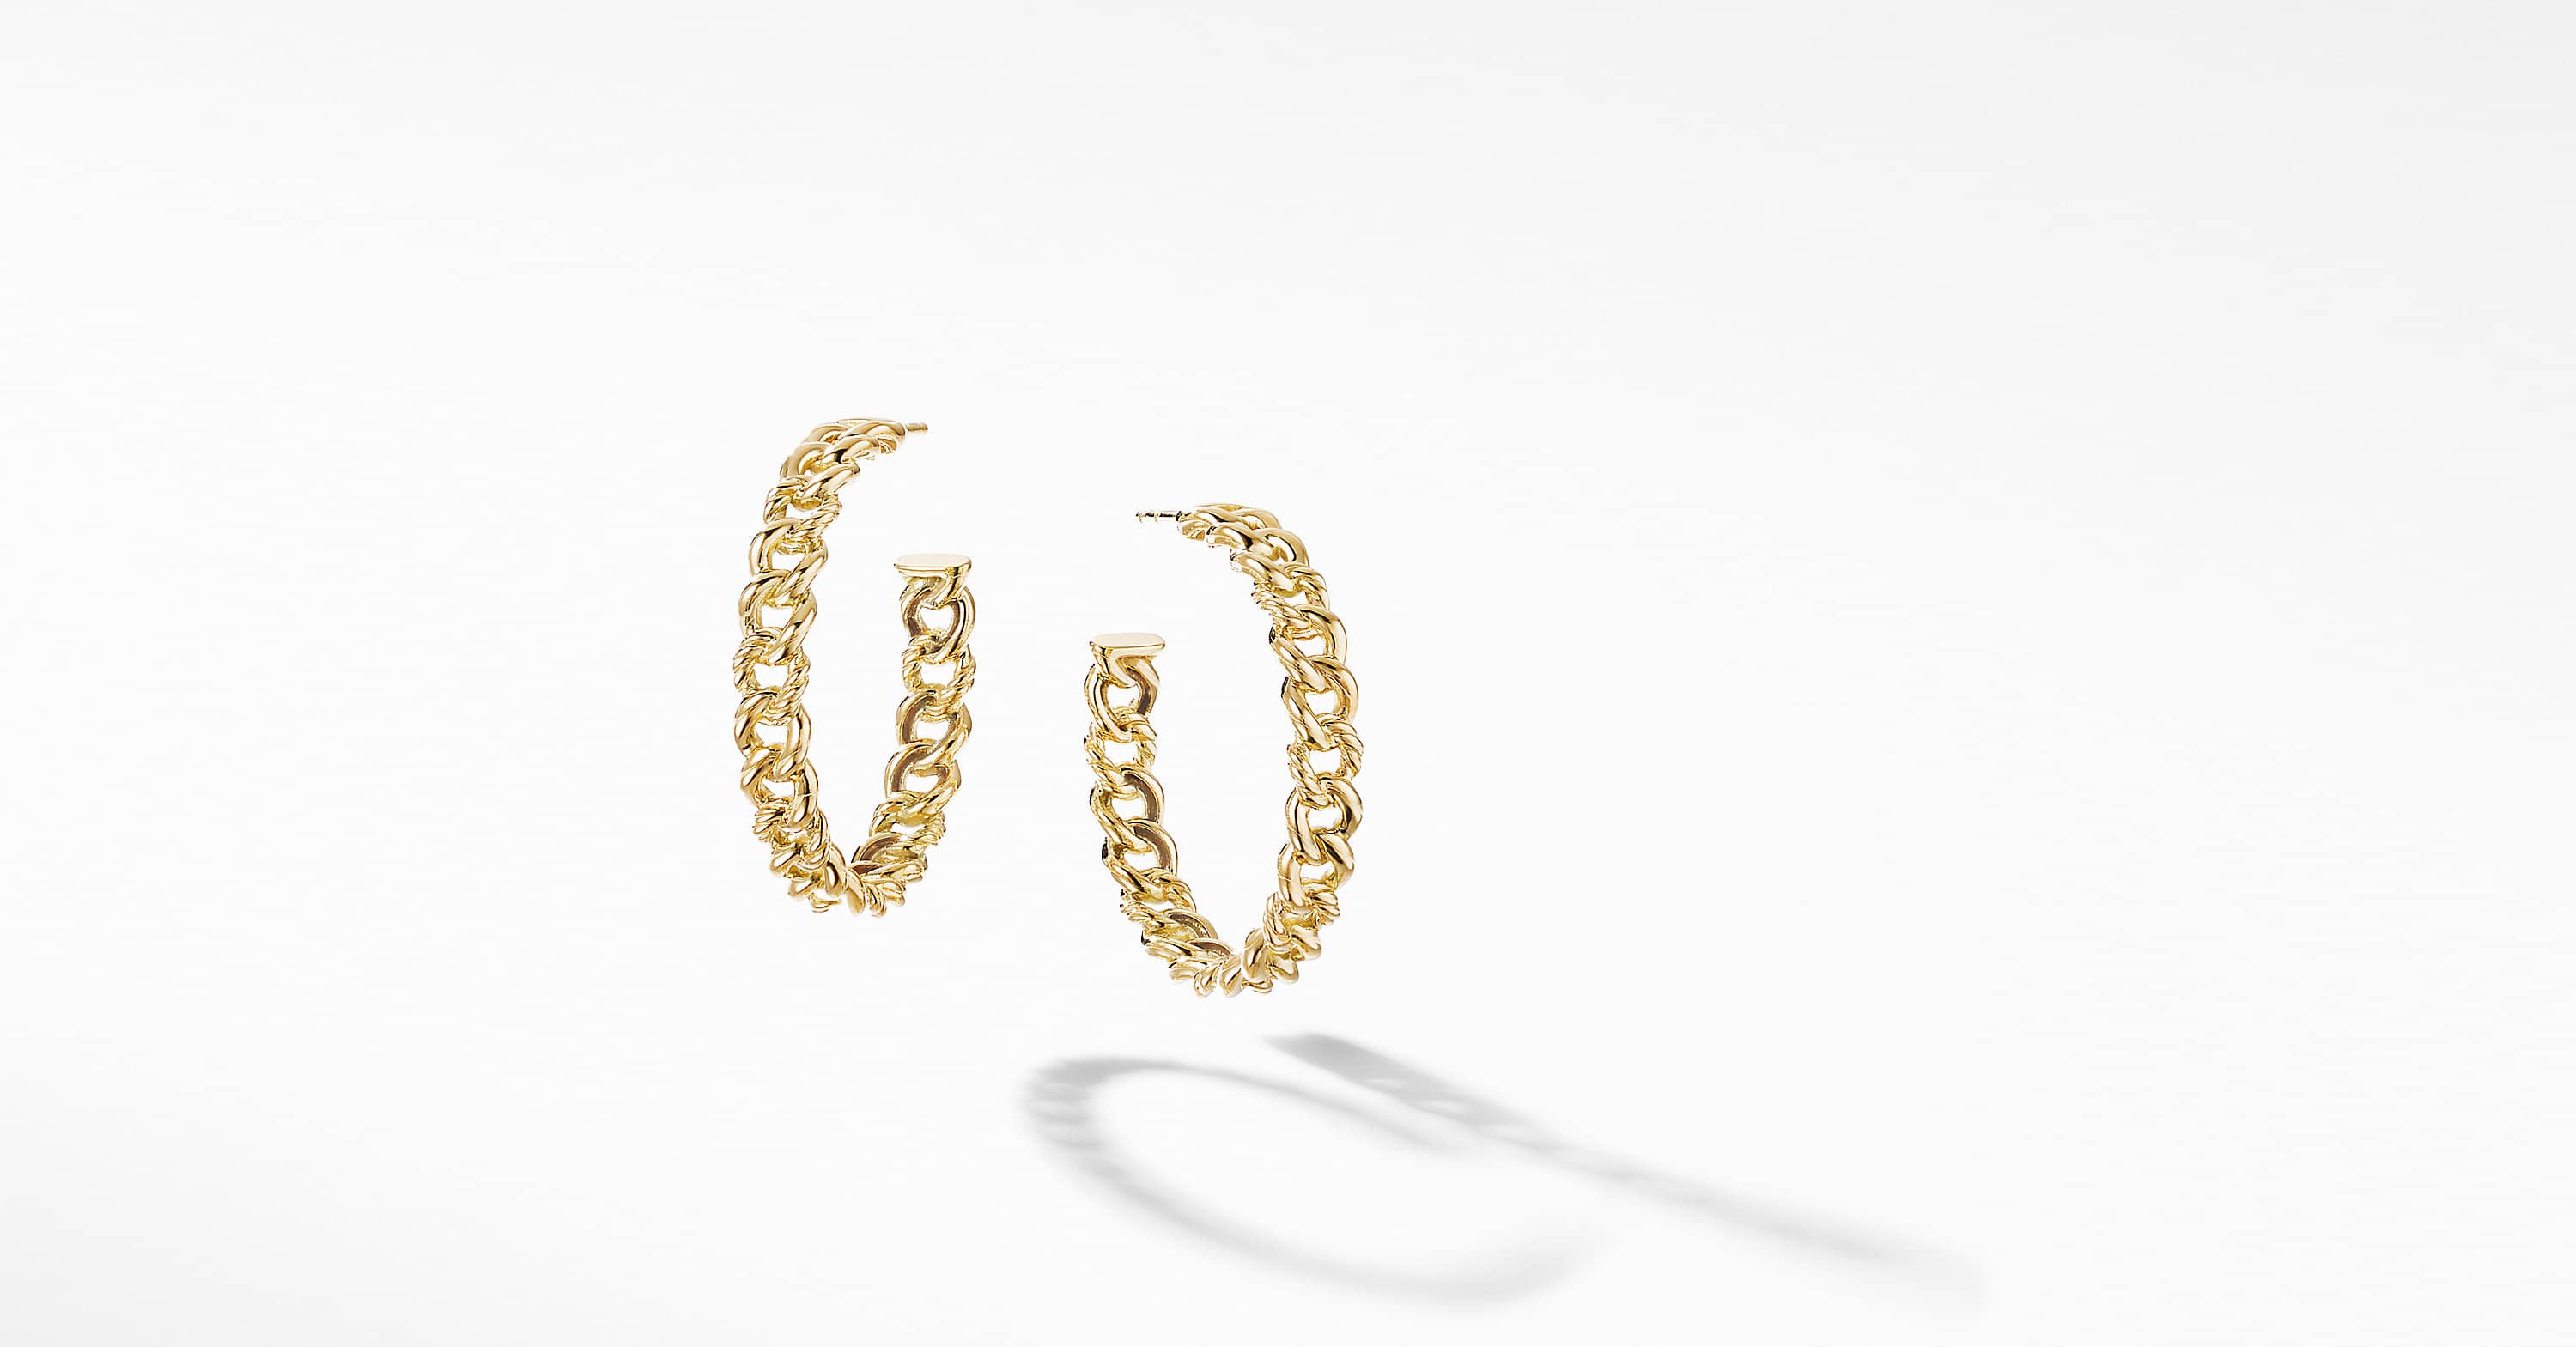 Belmont Curb Link Medium Hoop Earrings in 18K Yellow Gold